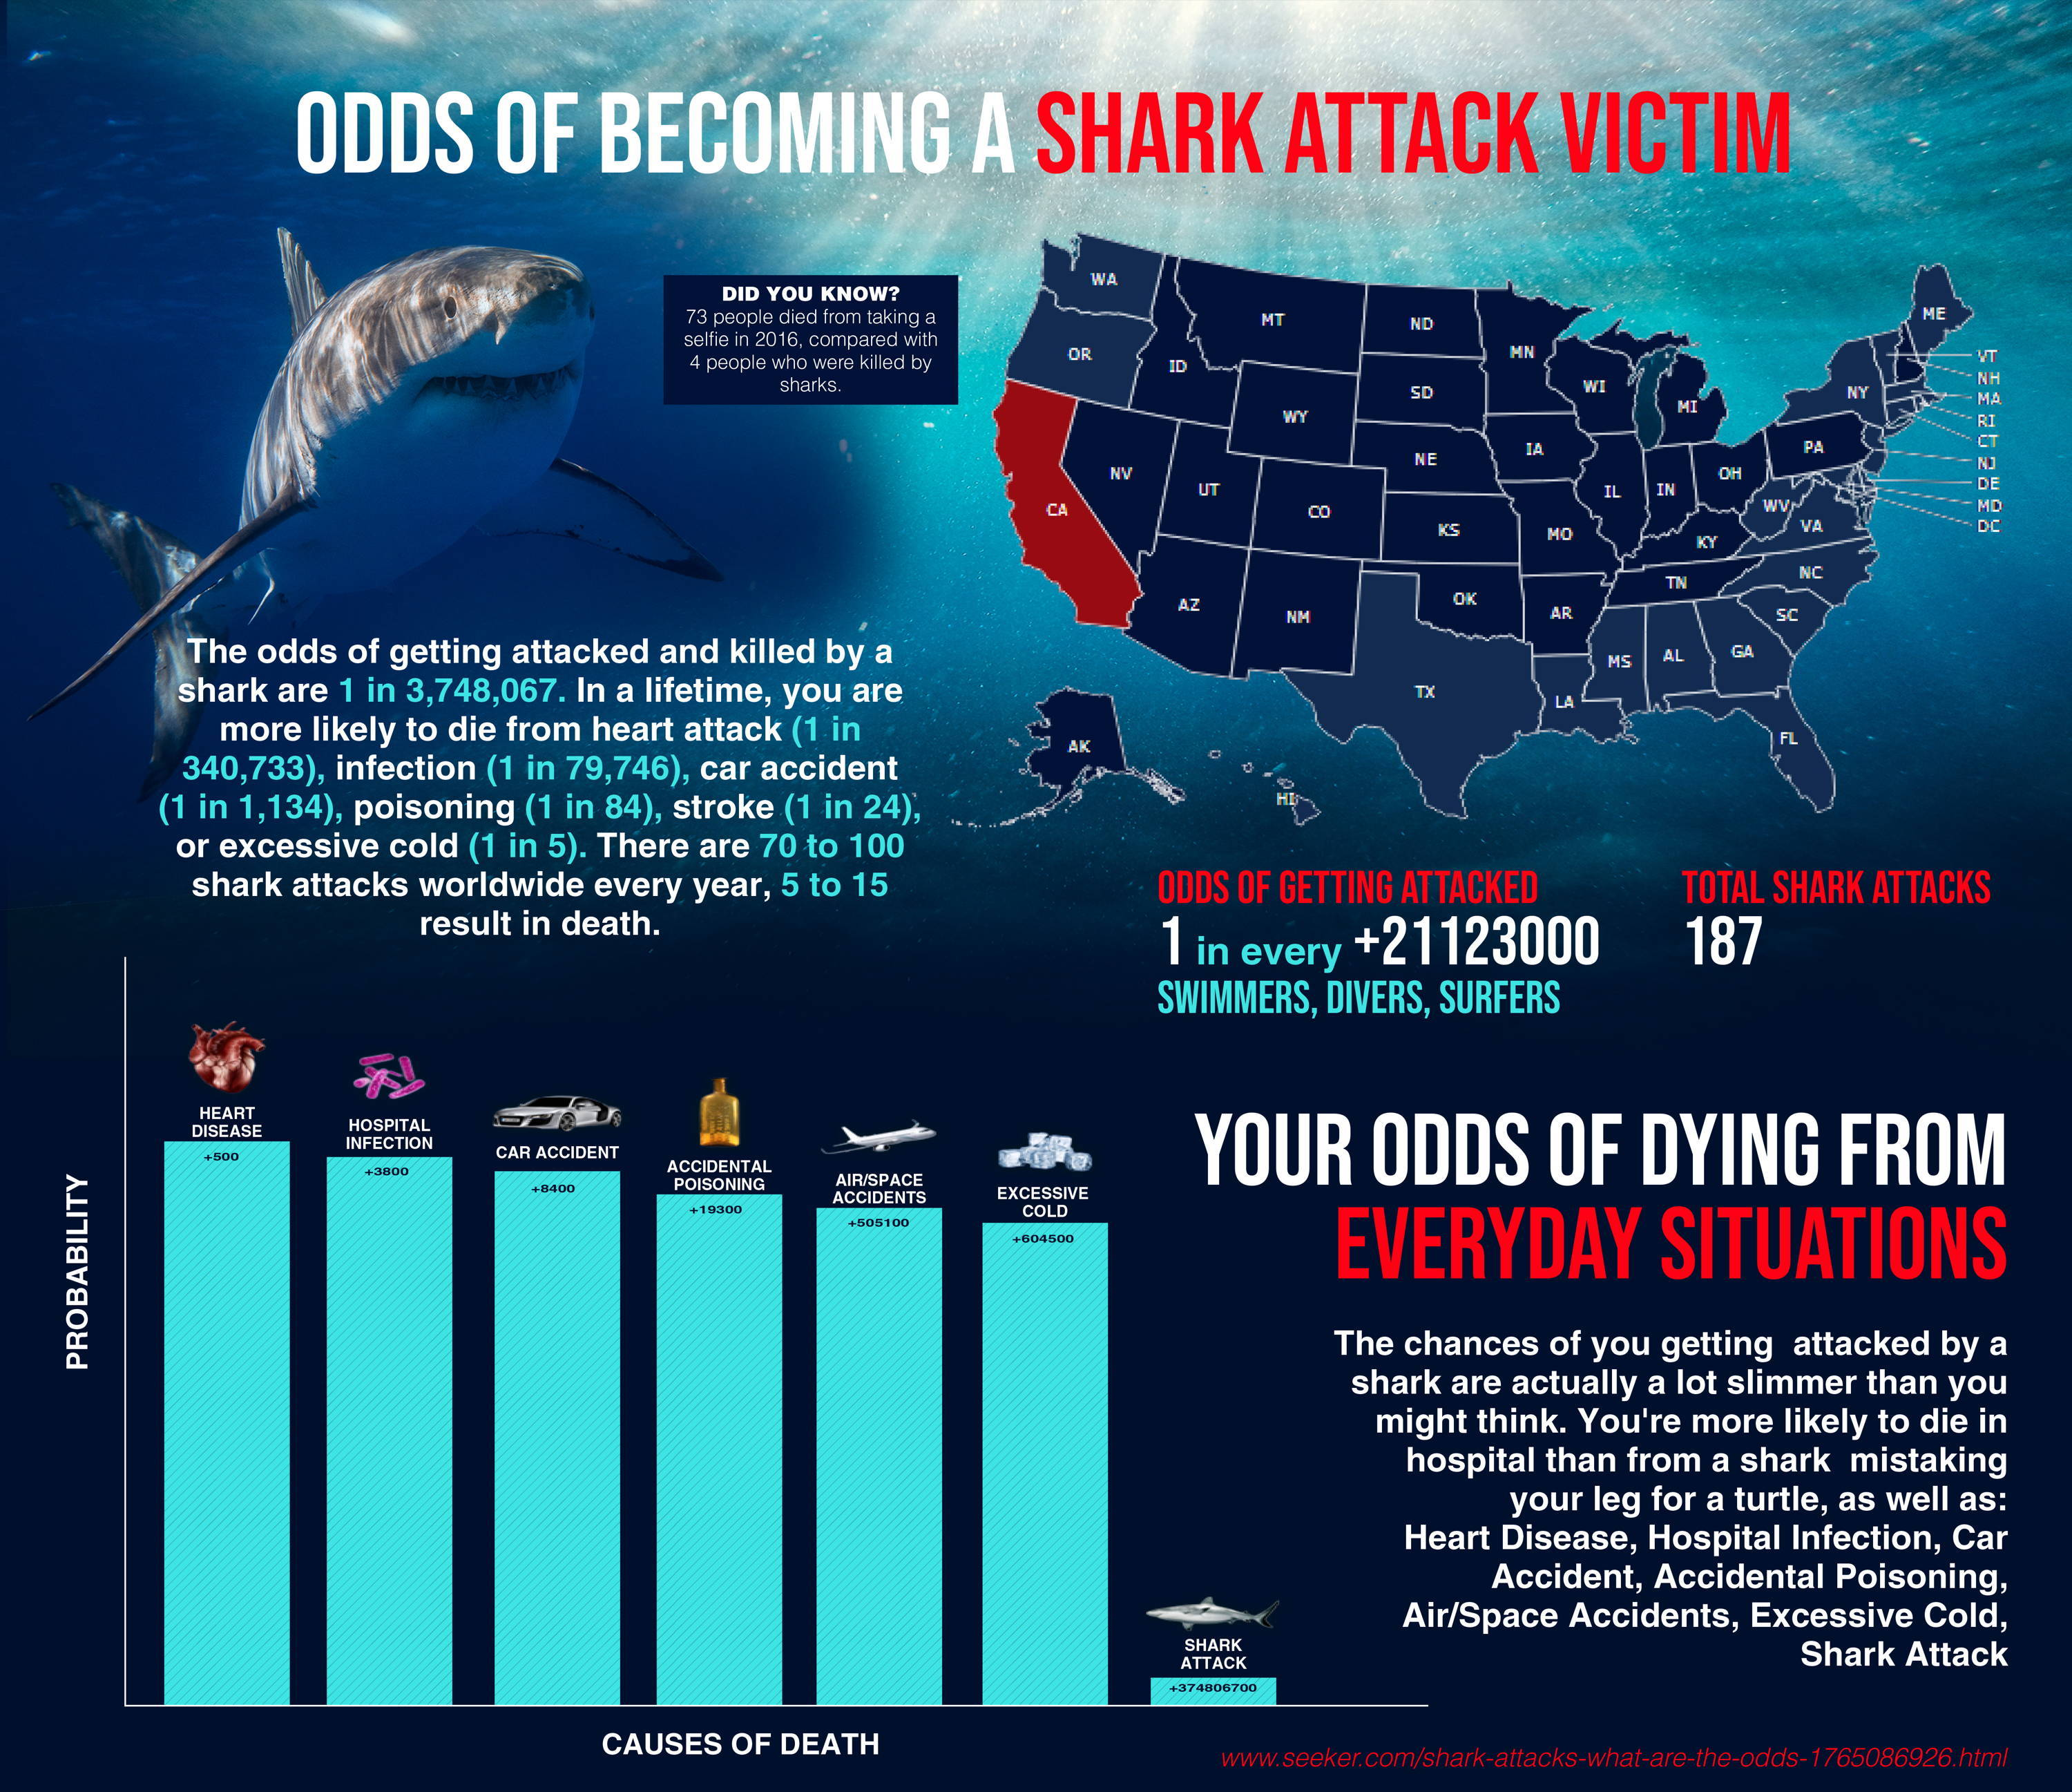 Odds Of Becoming A Shark Attack Victim